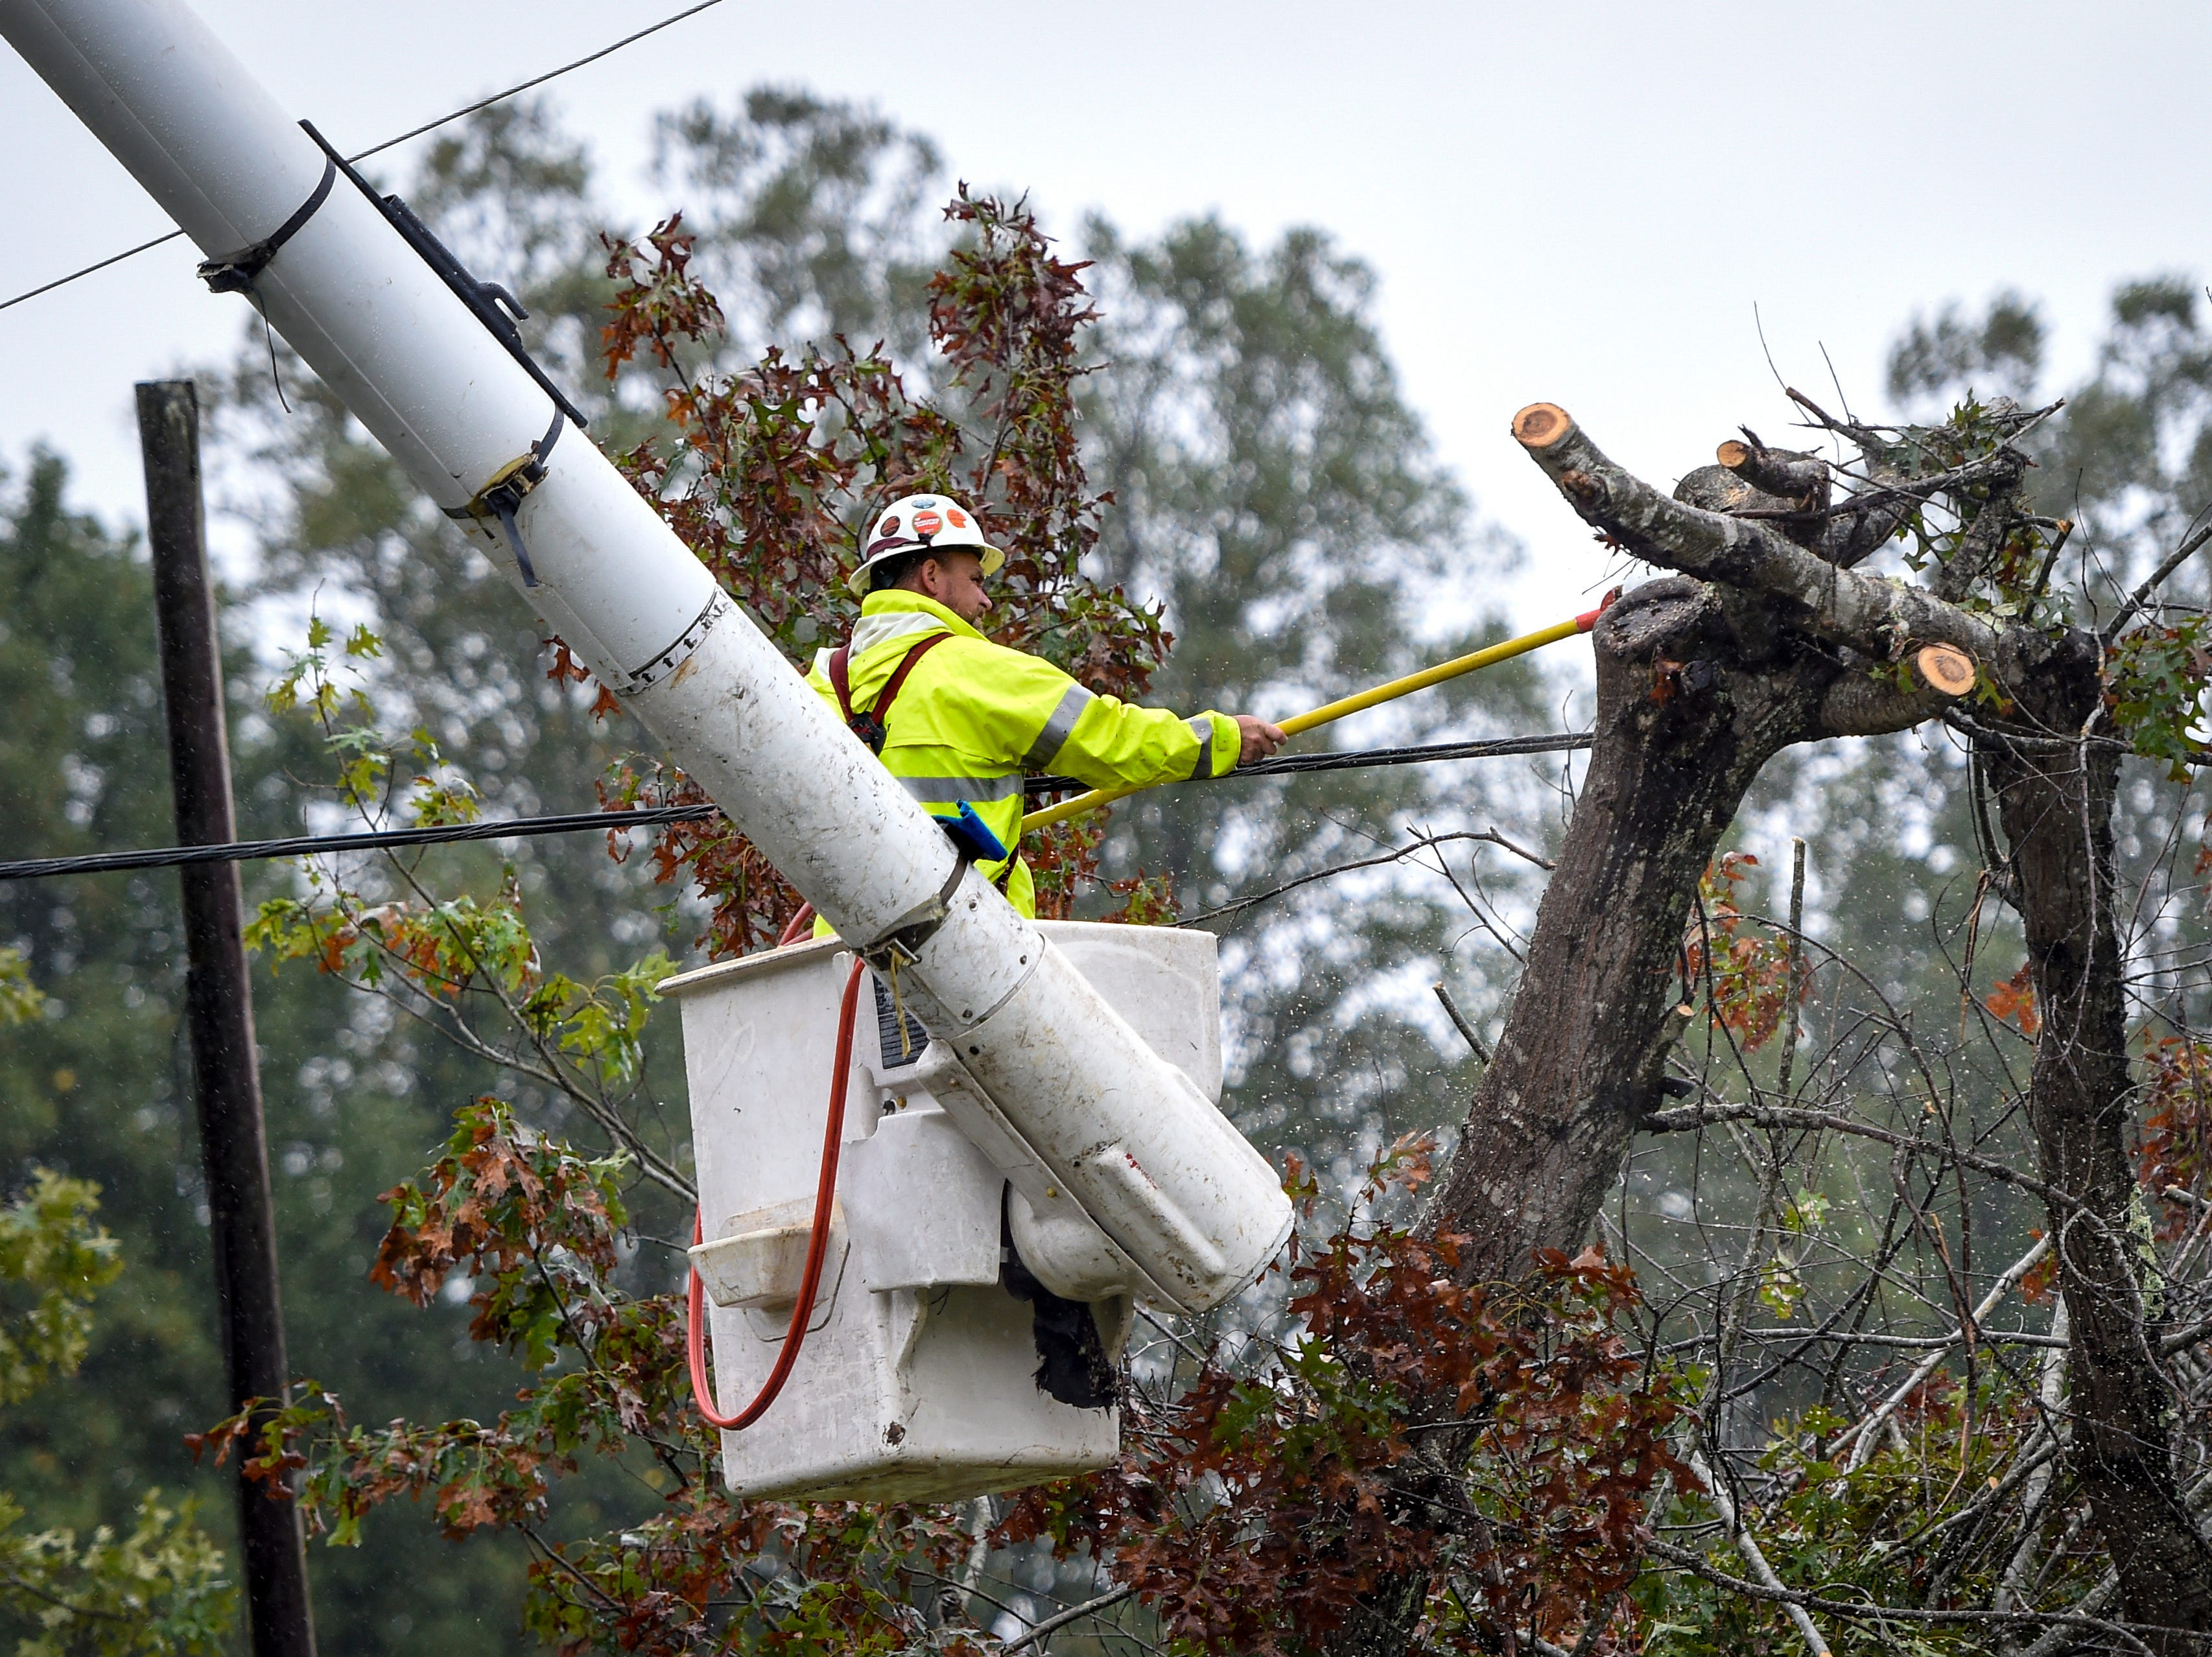 A worker from Asplundh Tree Expert Company cuts away tree limbs from a power line after a huge tree fell on Spainhour Road as a result of steady rainfall from the effects of Tropical Storm Florence, Sunday, Sept. 16, 2018 in Morganton, N.C.